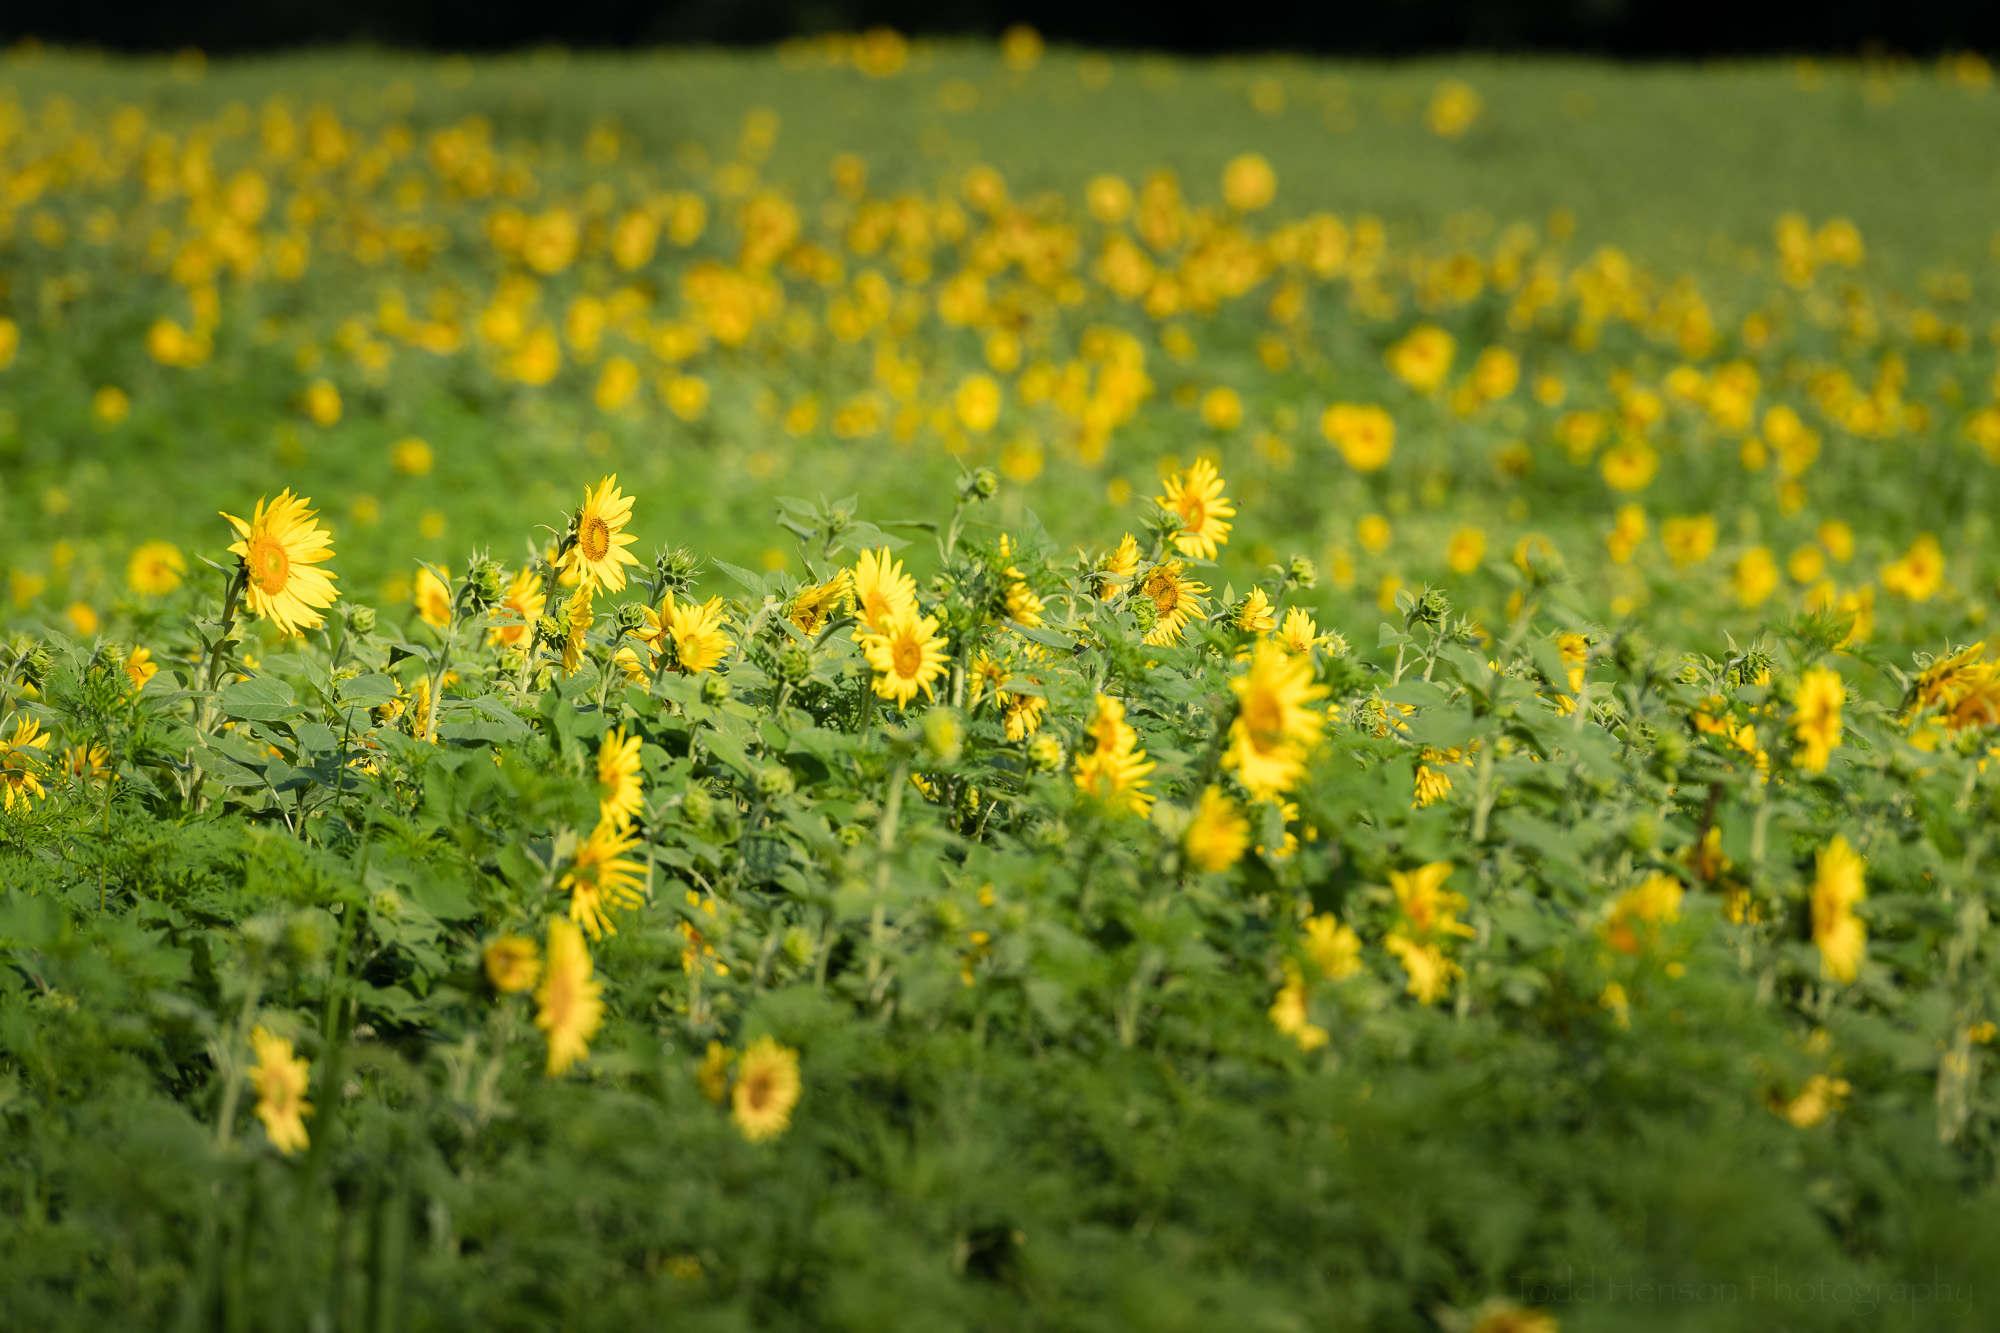 Side view of the partly blooming sunflower field.